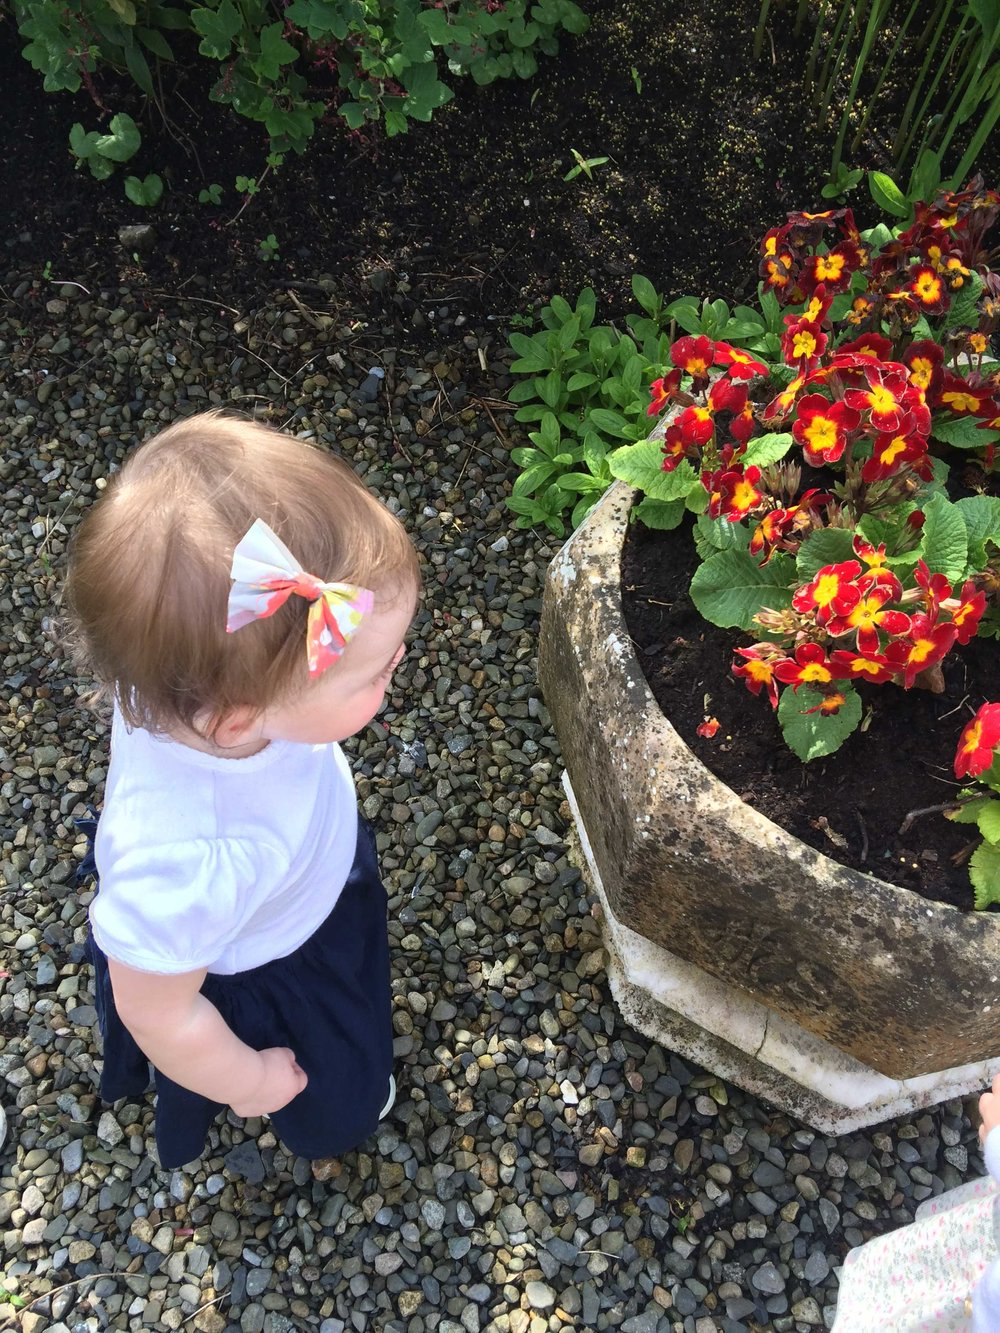 smelling-the-flowers-in-garden-in-ireland.jpg